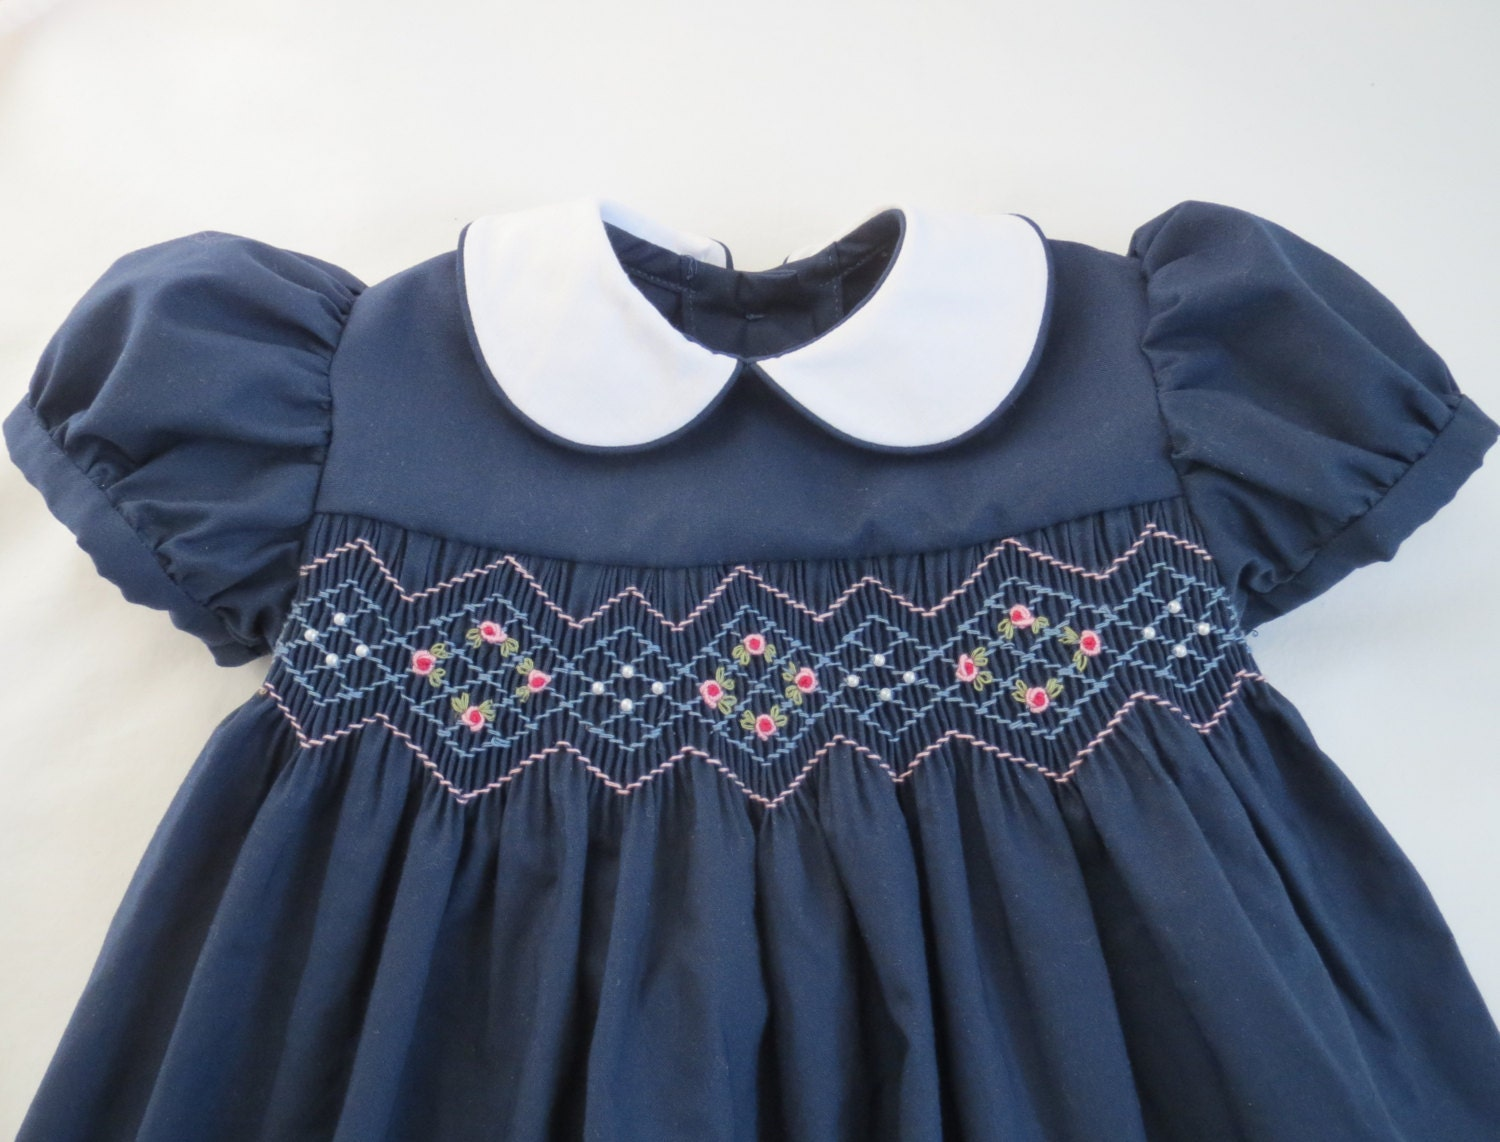 e48004dd6f2cb Navy Blue and Pink Hand Smocked Dress for Baby. Toddler Girl. | Etsy